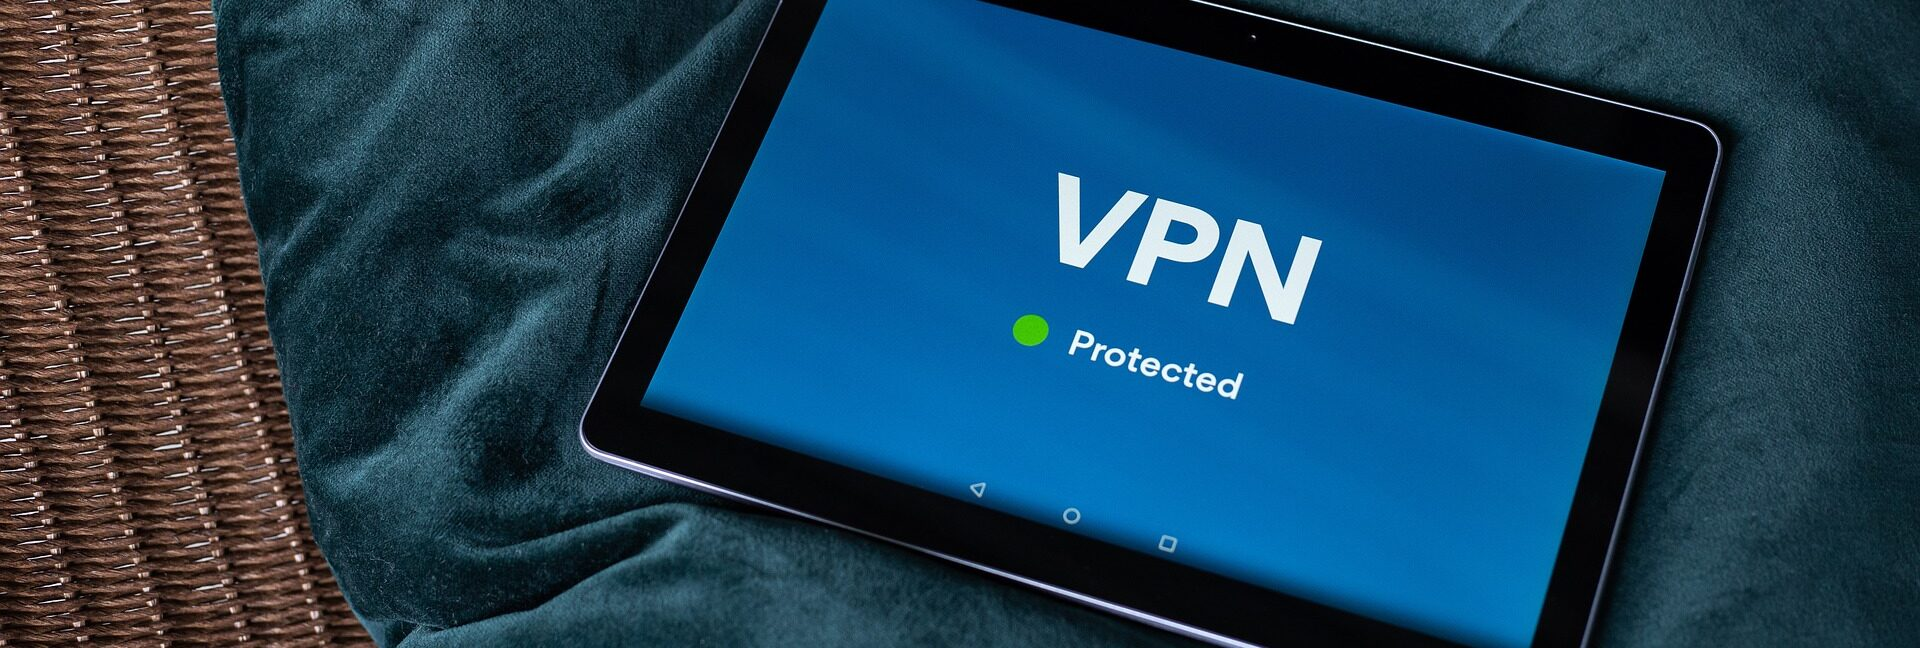 VPN Supports iOS, Android, Pc & Mac